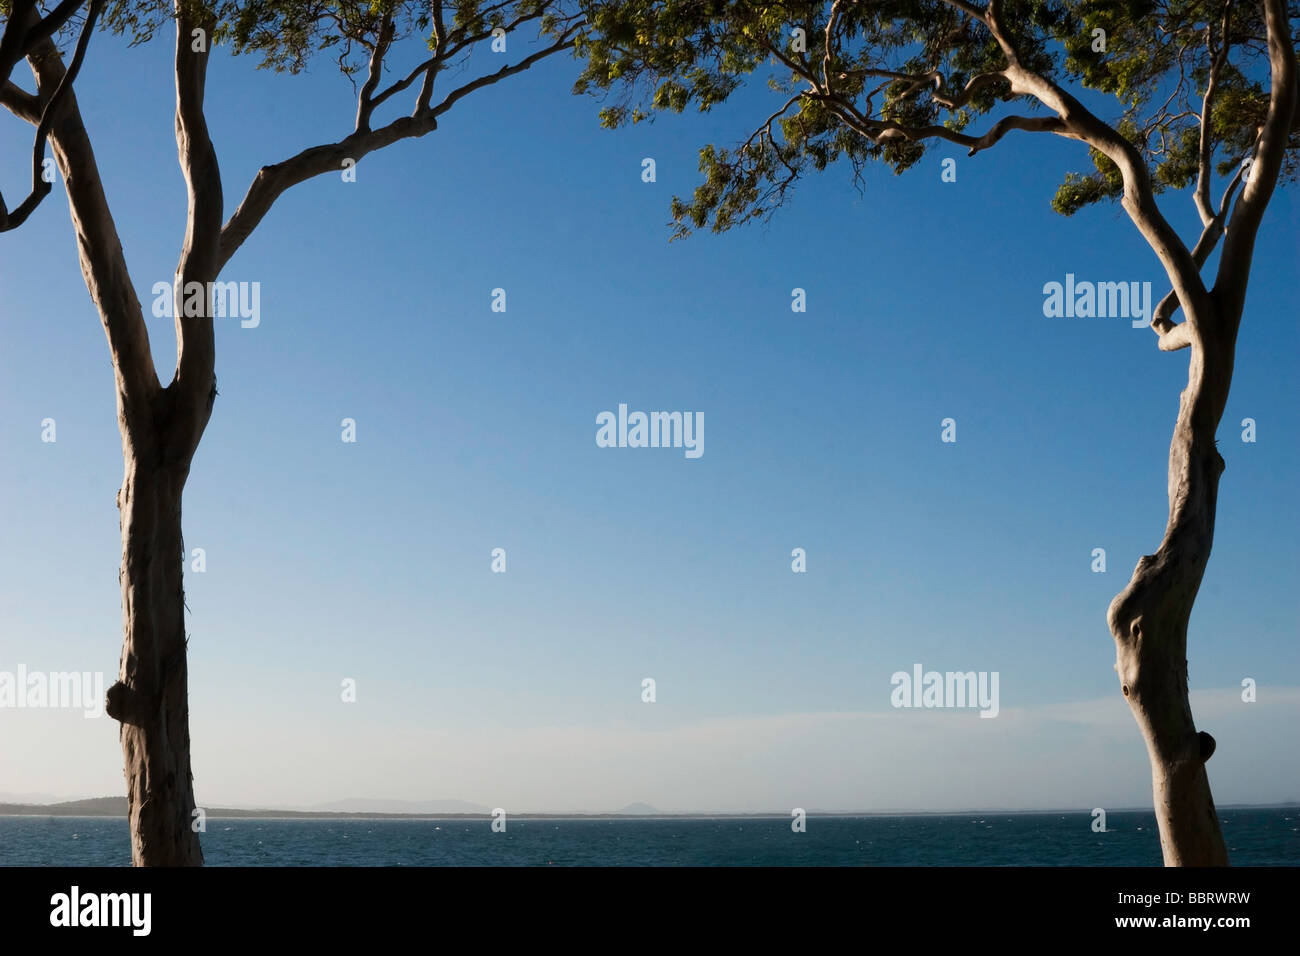 Two eucalyptus trees framing the ocean and a clear blue sky. - Stock Image